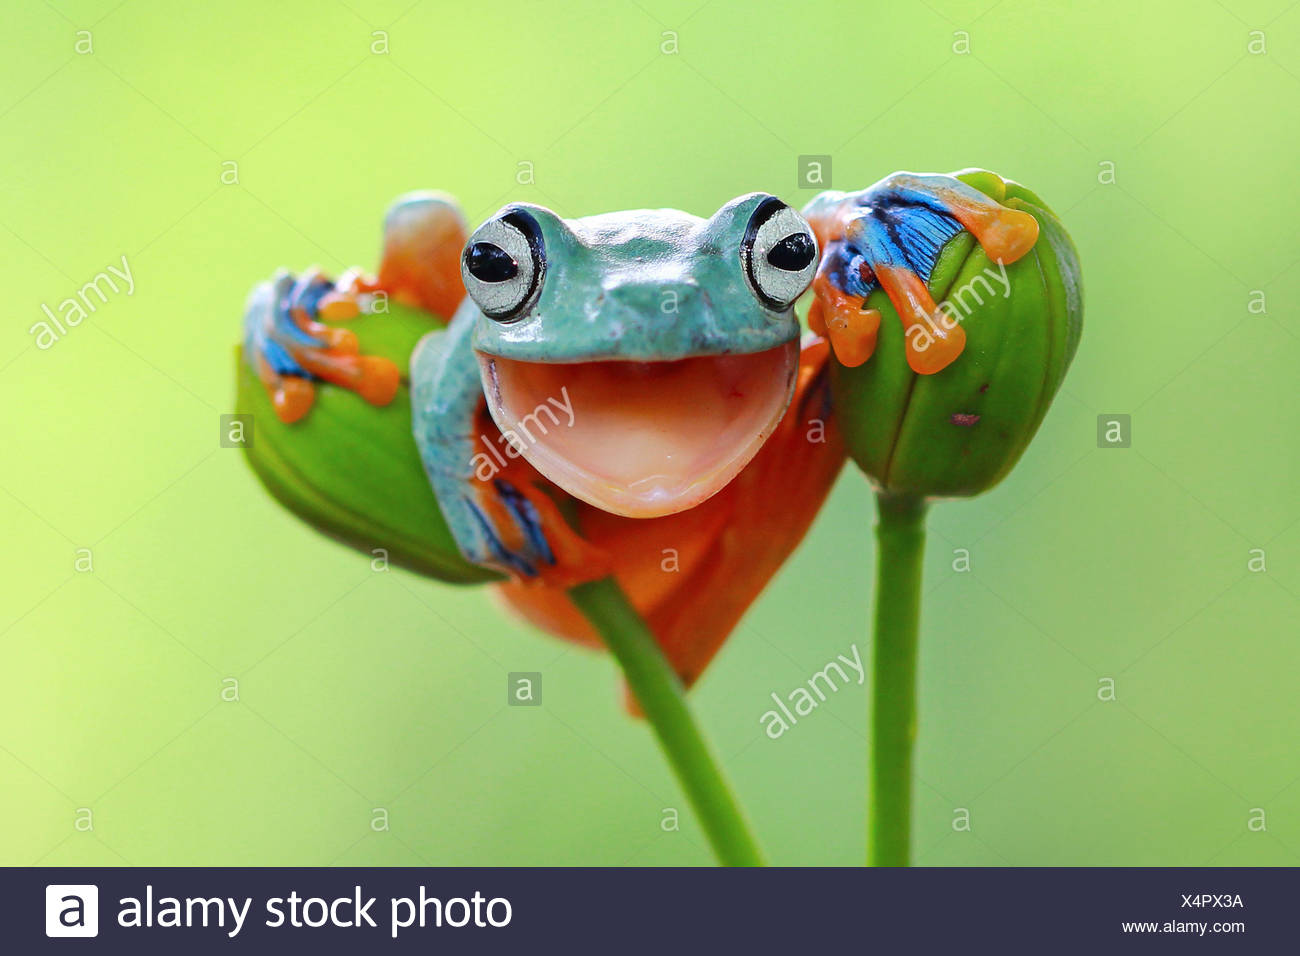 Portrait of a tree frog with mouth open smiling, Indonesia - Stock Image